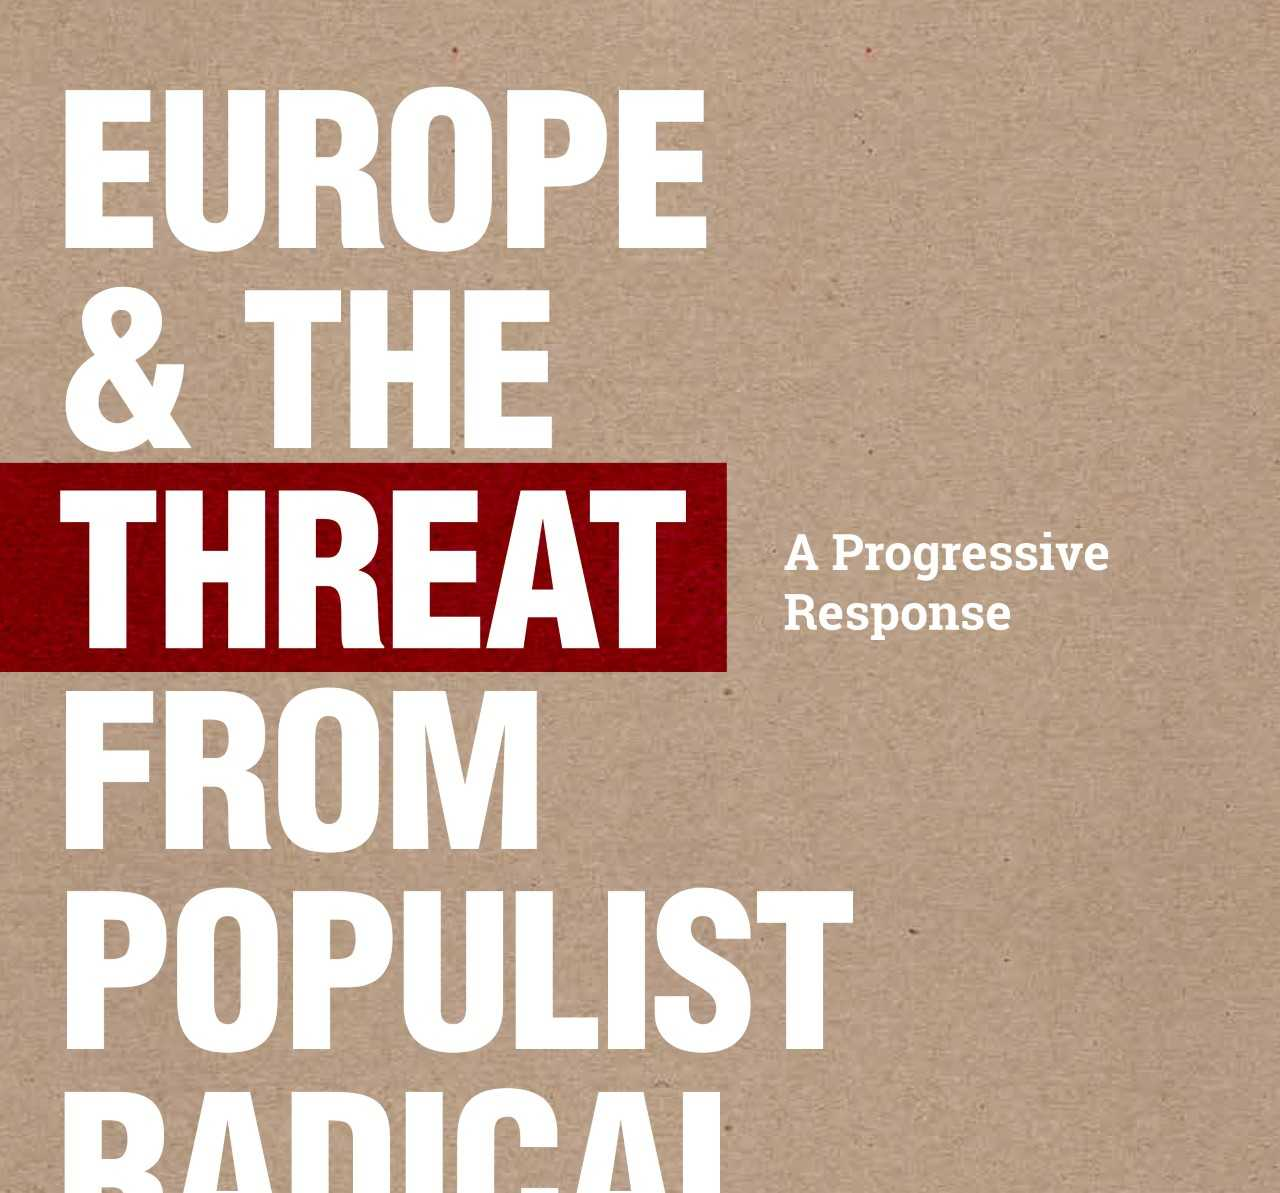 Europe and the threat from populist radical right – A progressive response